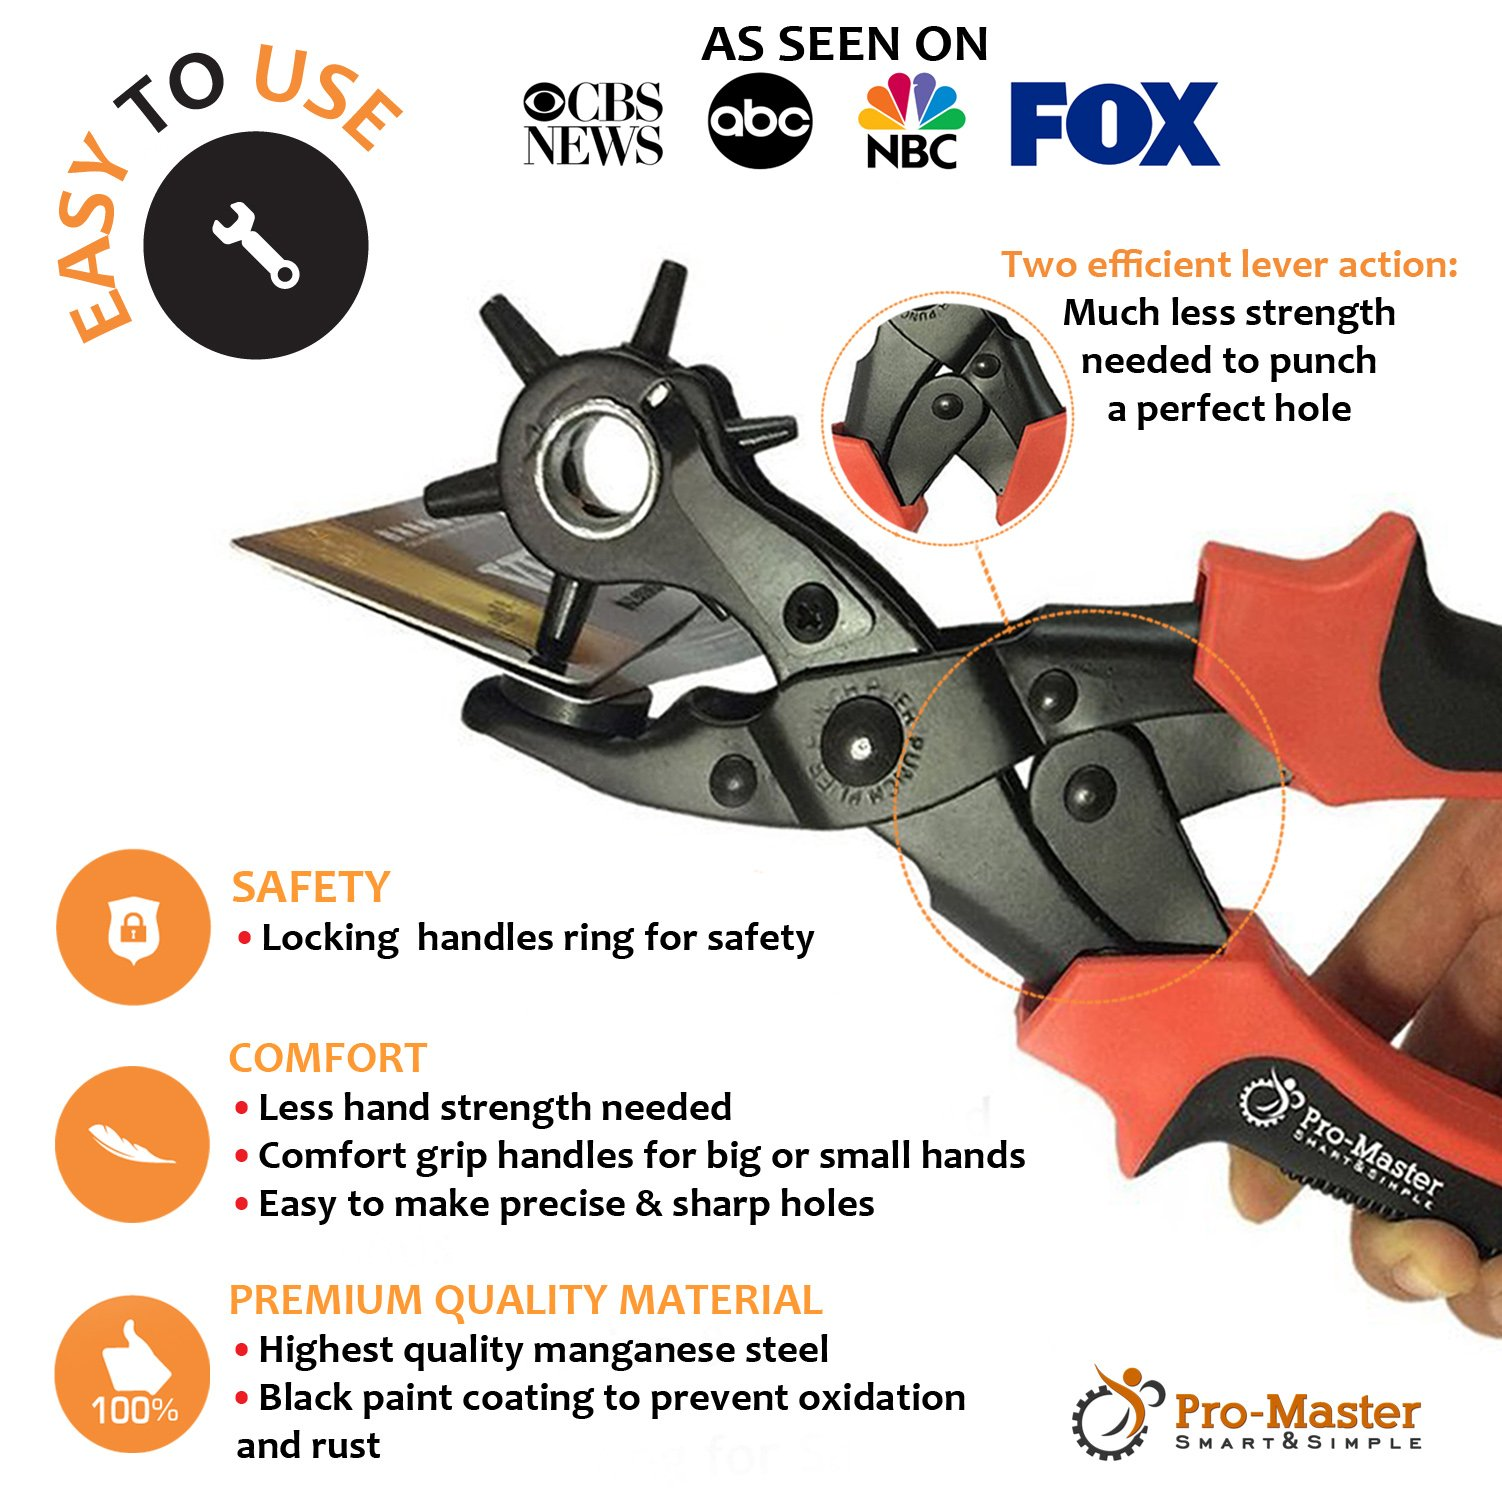 Best Leather Hole Punch Set for Belts, Watch Bands, Straps, Dog Collars, Saddles, Shoes, Fabric, DIY Home or Craft Projects. Super Heavy Duty Rotary Puncher, Multi Hole Sizes Maker Tool, 3 Yr Warranty by ProMaster (Image #3)